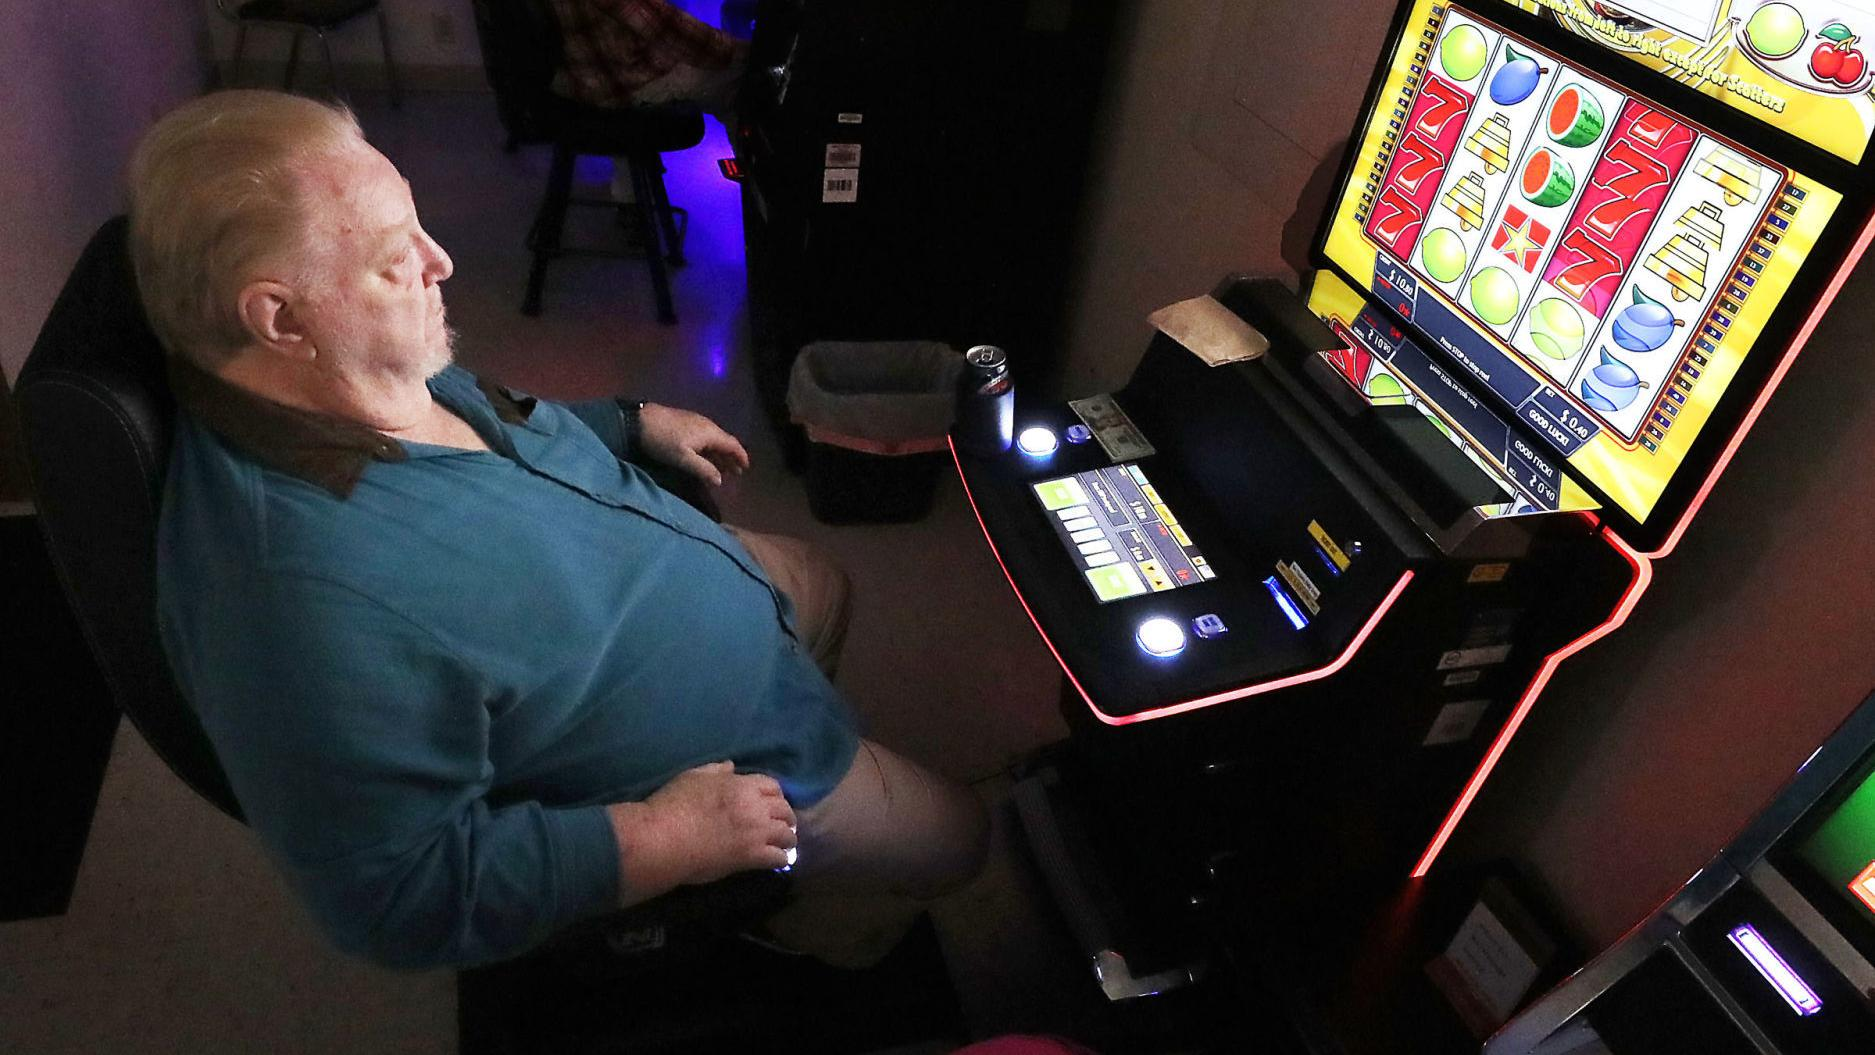 Decatur collected $6 million from video gambling. One city official says 'this is not what we bargained for.' | Government & Politics | herald-review.com